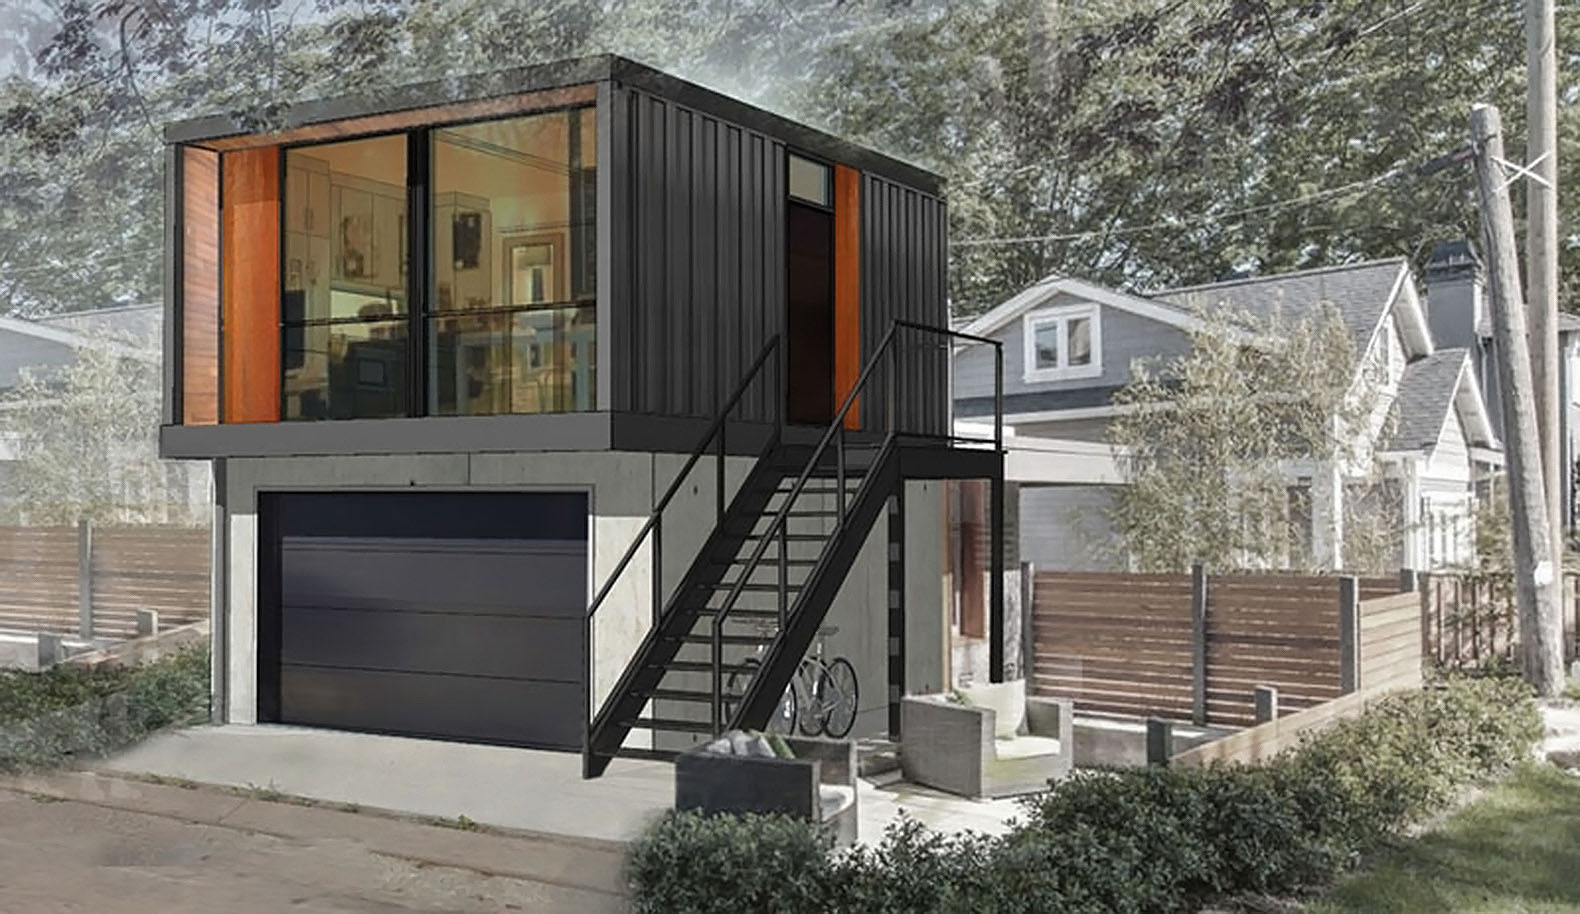 Best Kitchen Gallery: Prefab Homes Colorado Prefab Homes With Excellent Designs To Have of Colorado Shipping Container Homes on rachelxblog.com